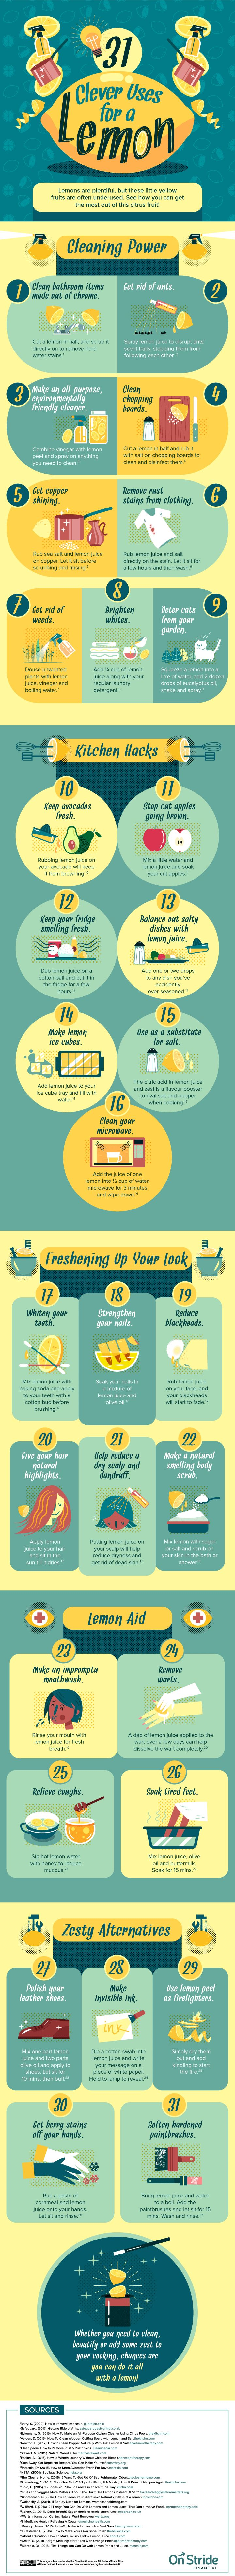 31 Clever Uses for a Lemon #Infographic #Lemon #Uses